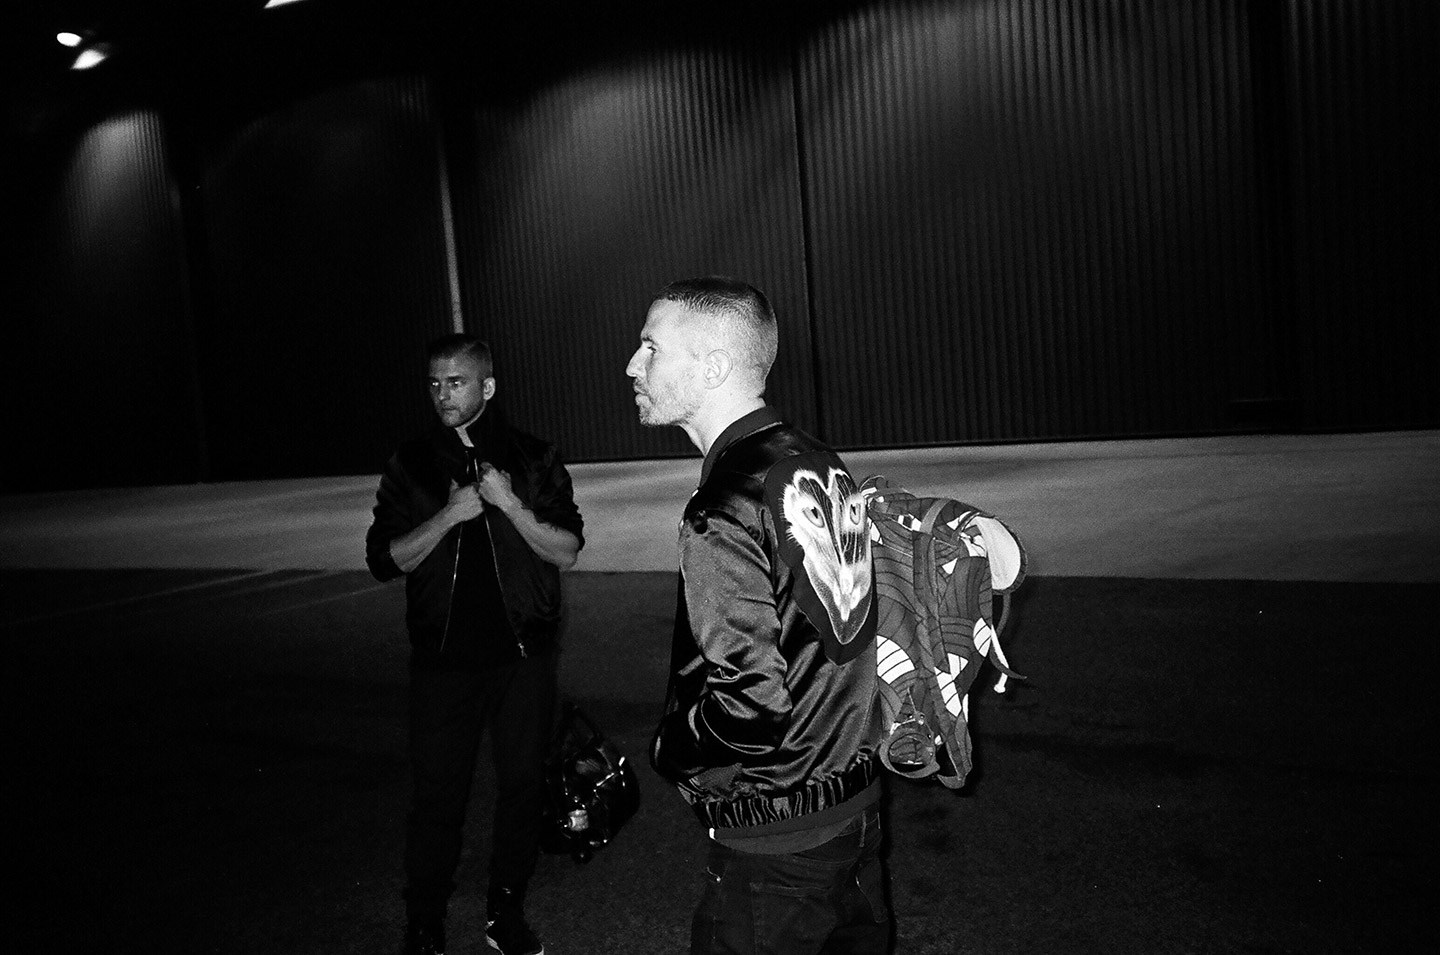 Christian Karlsson and Linus Eklöw of Galantis. Behind the scenes of the music video by mosss